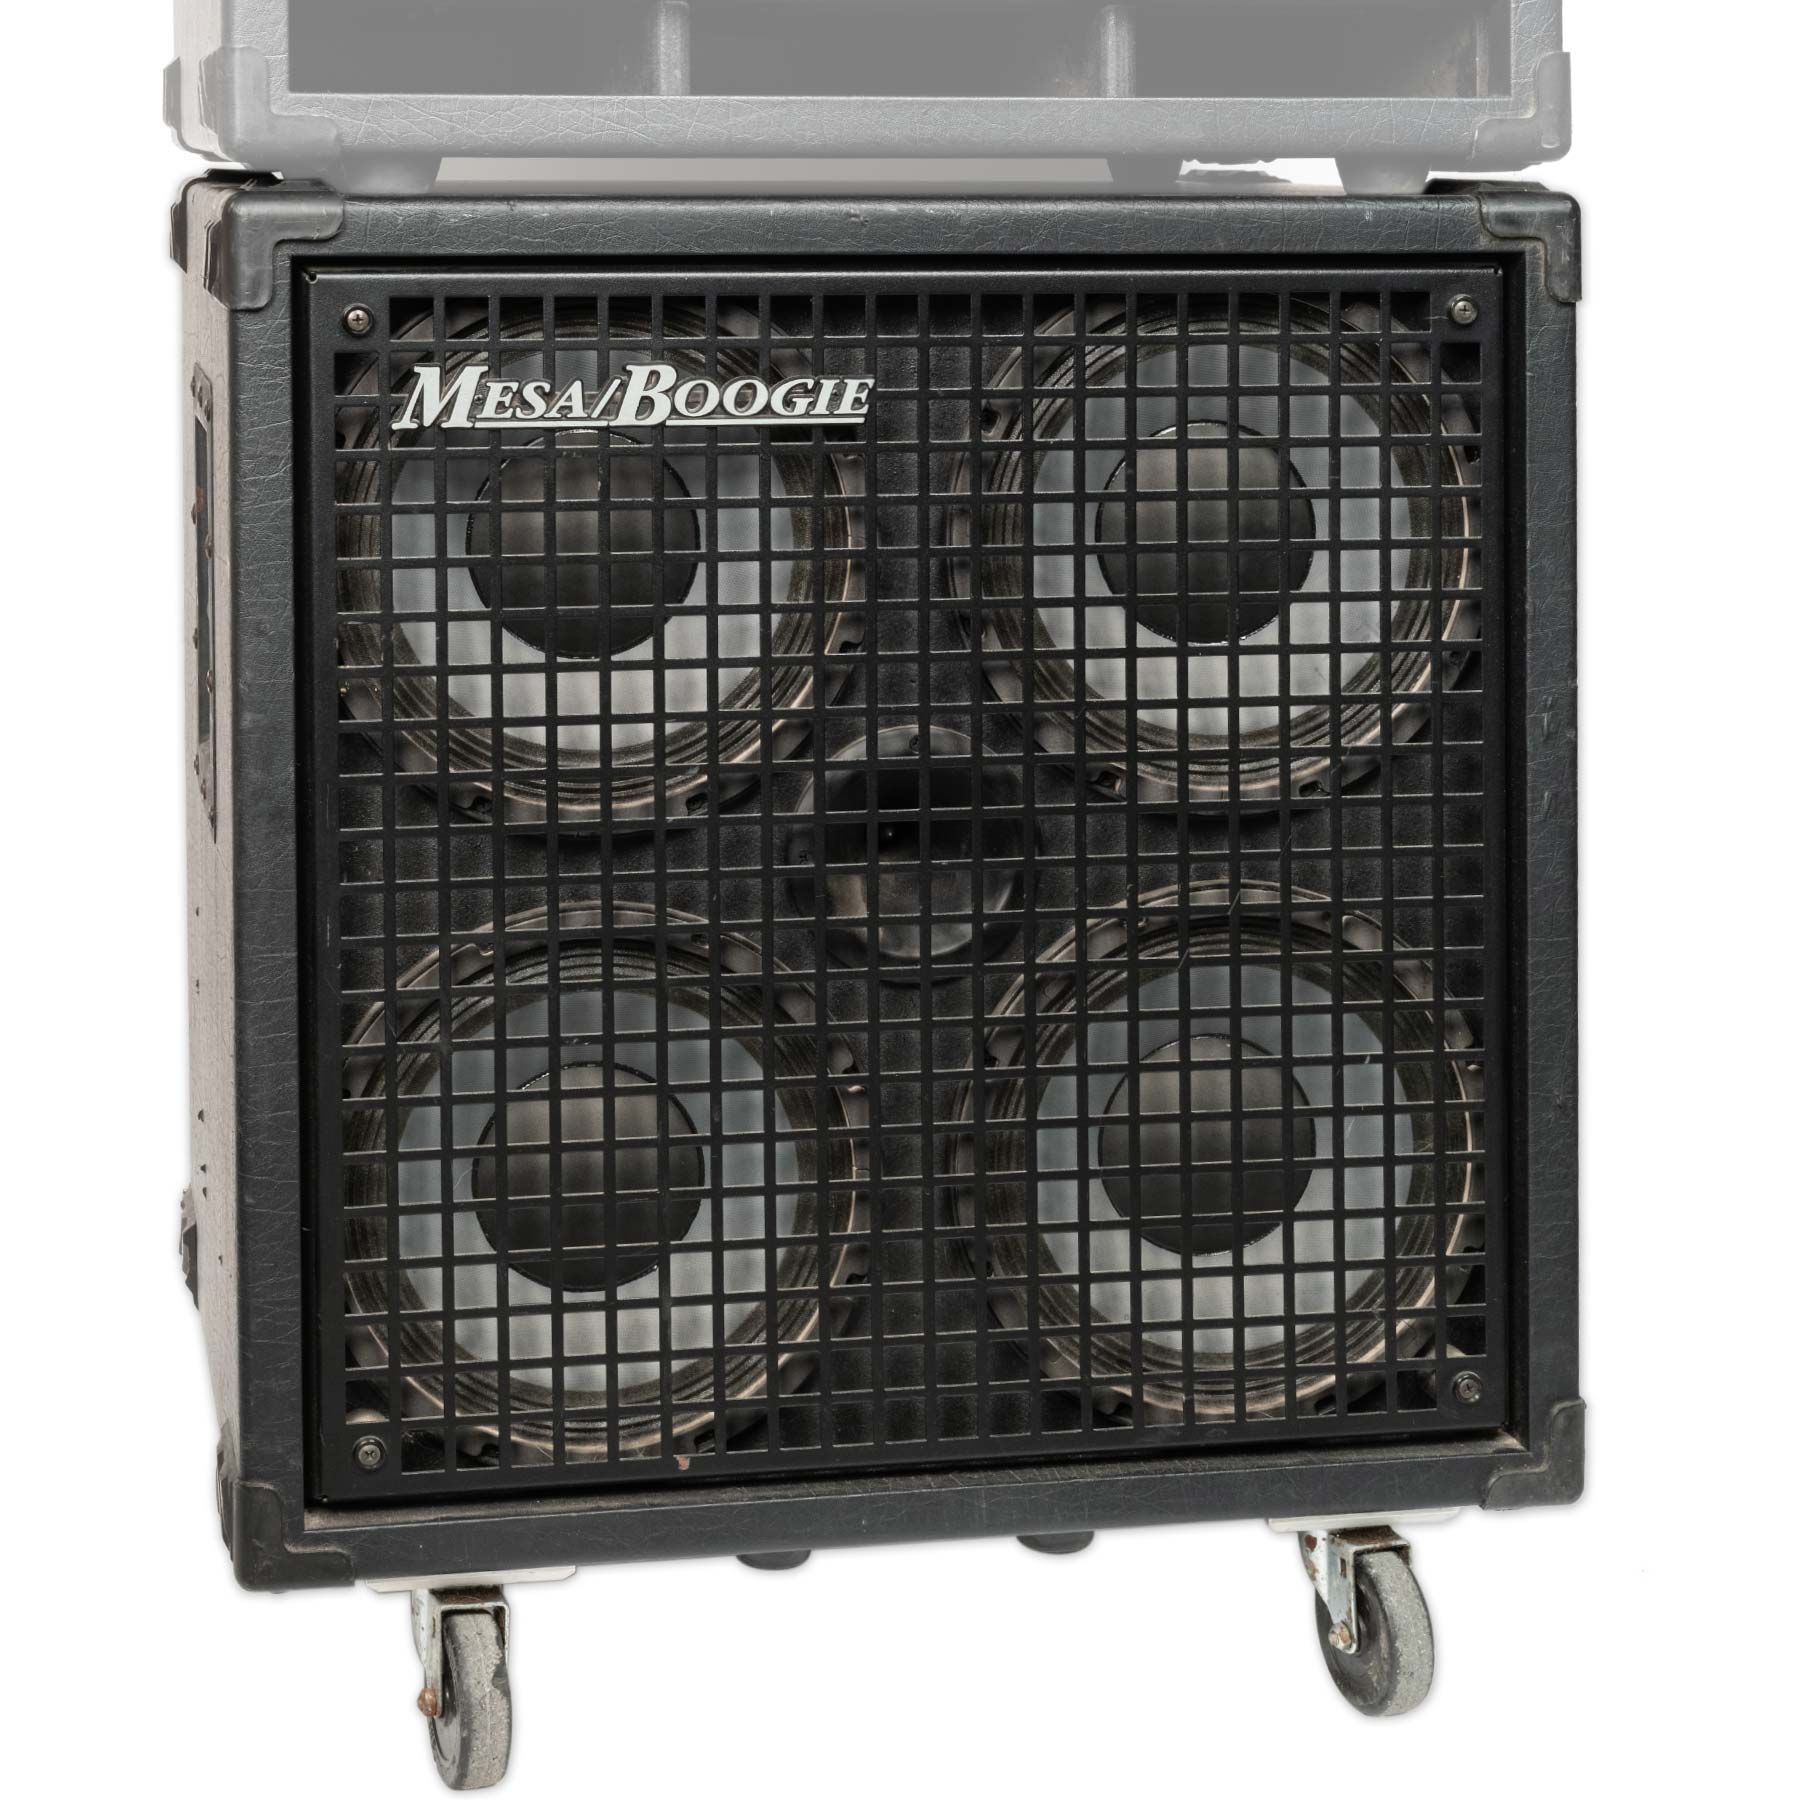 USED MESA BOOGIE 4X10 BASS CABINET